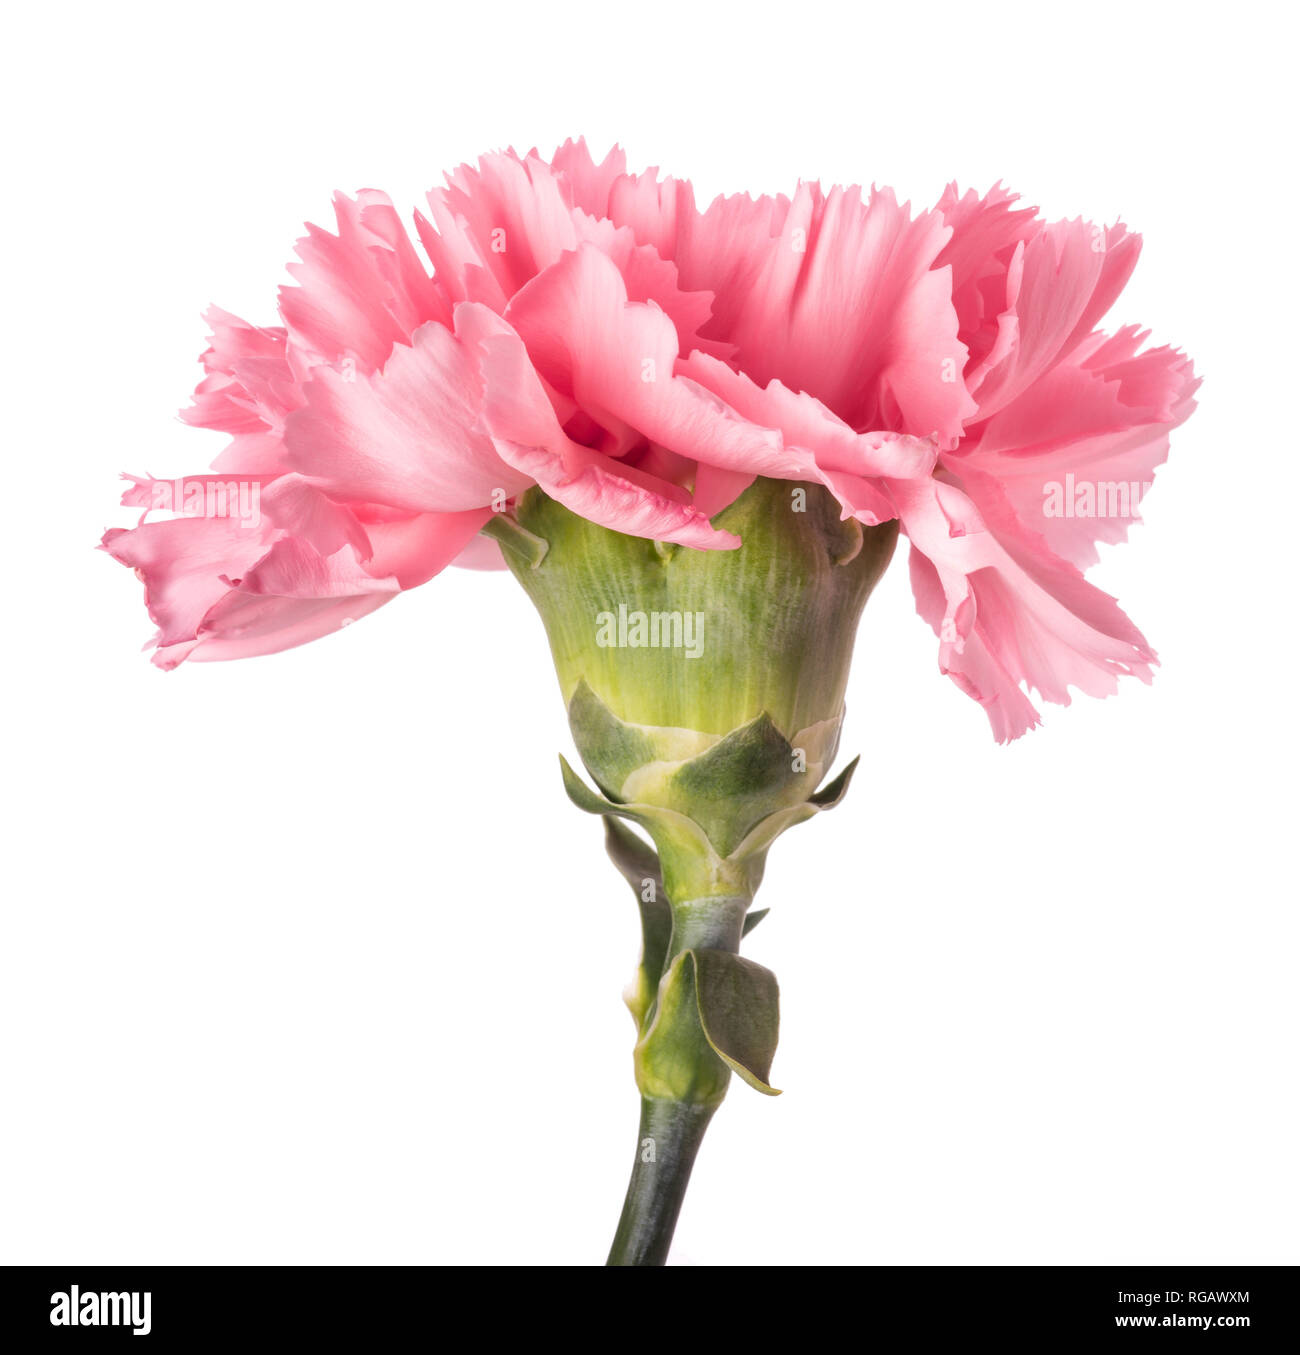 Pink carnation head isolated on white background - Stock Image